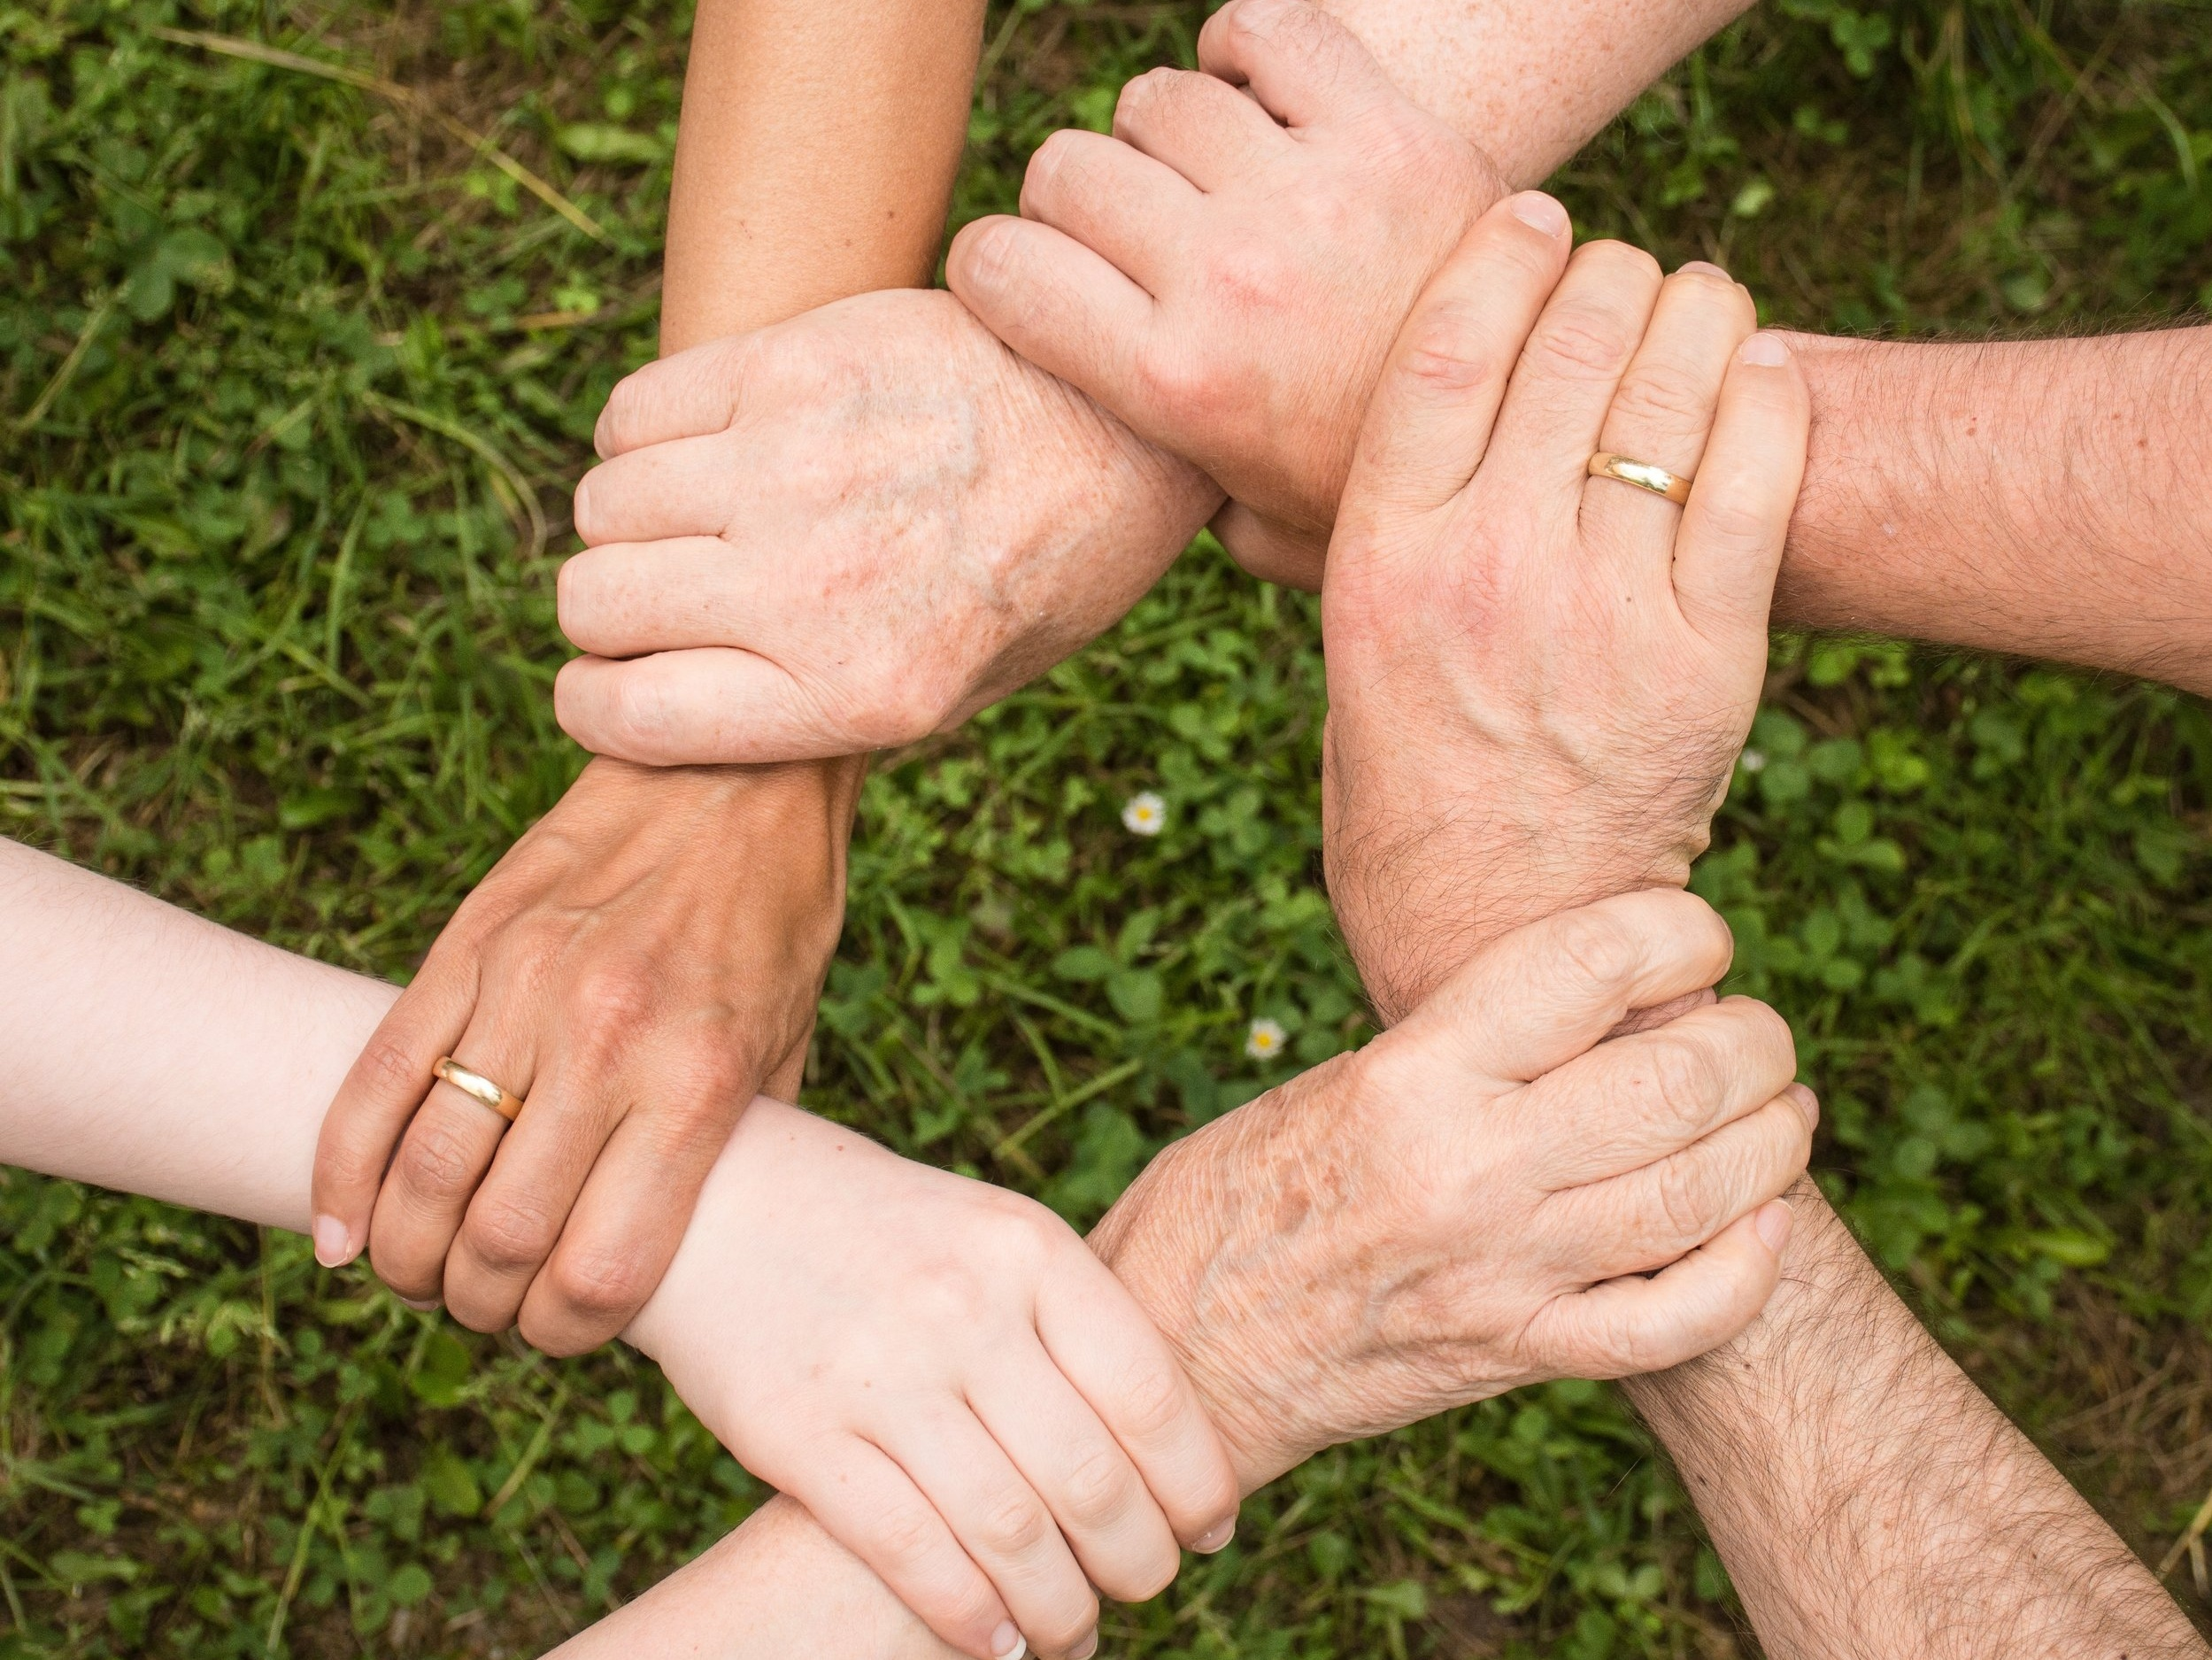 PARTNERSHIPS - Our partnerships enable us to tap into various different resources so that we can tailor our support towards the specific requirements of everyone we help.